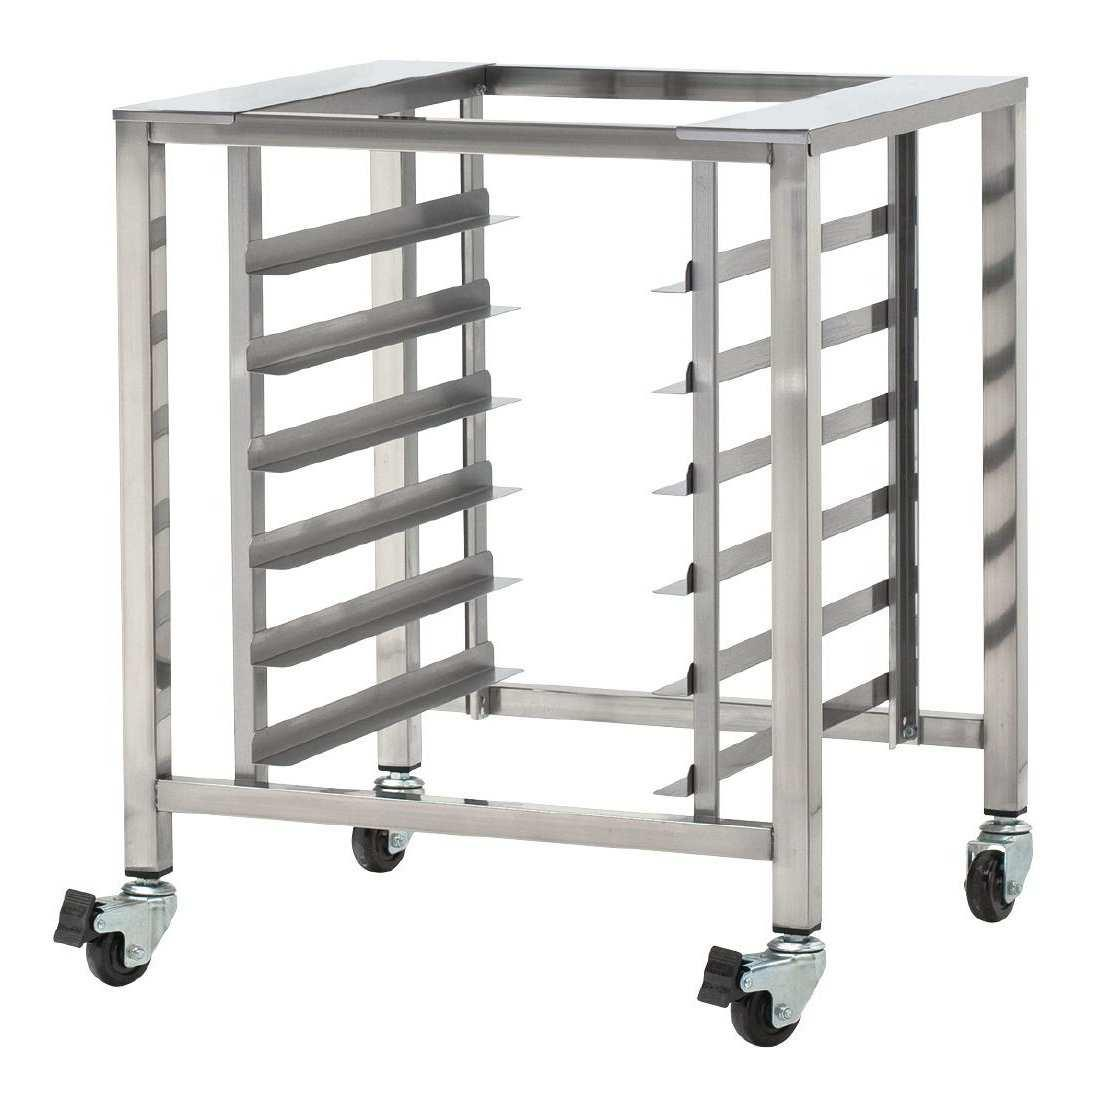 Turbofan By Moffat Convection Oven Stand SK32